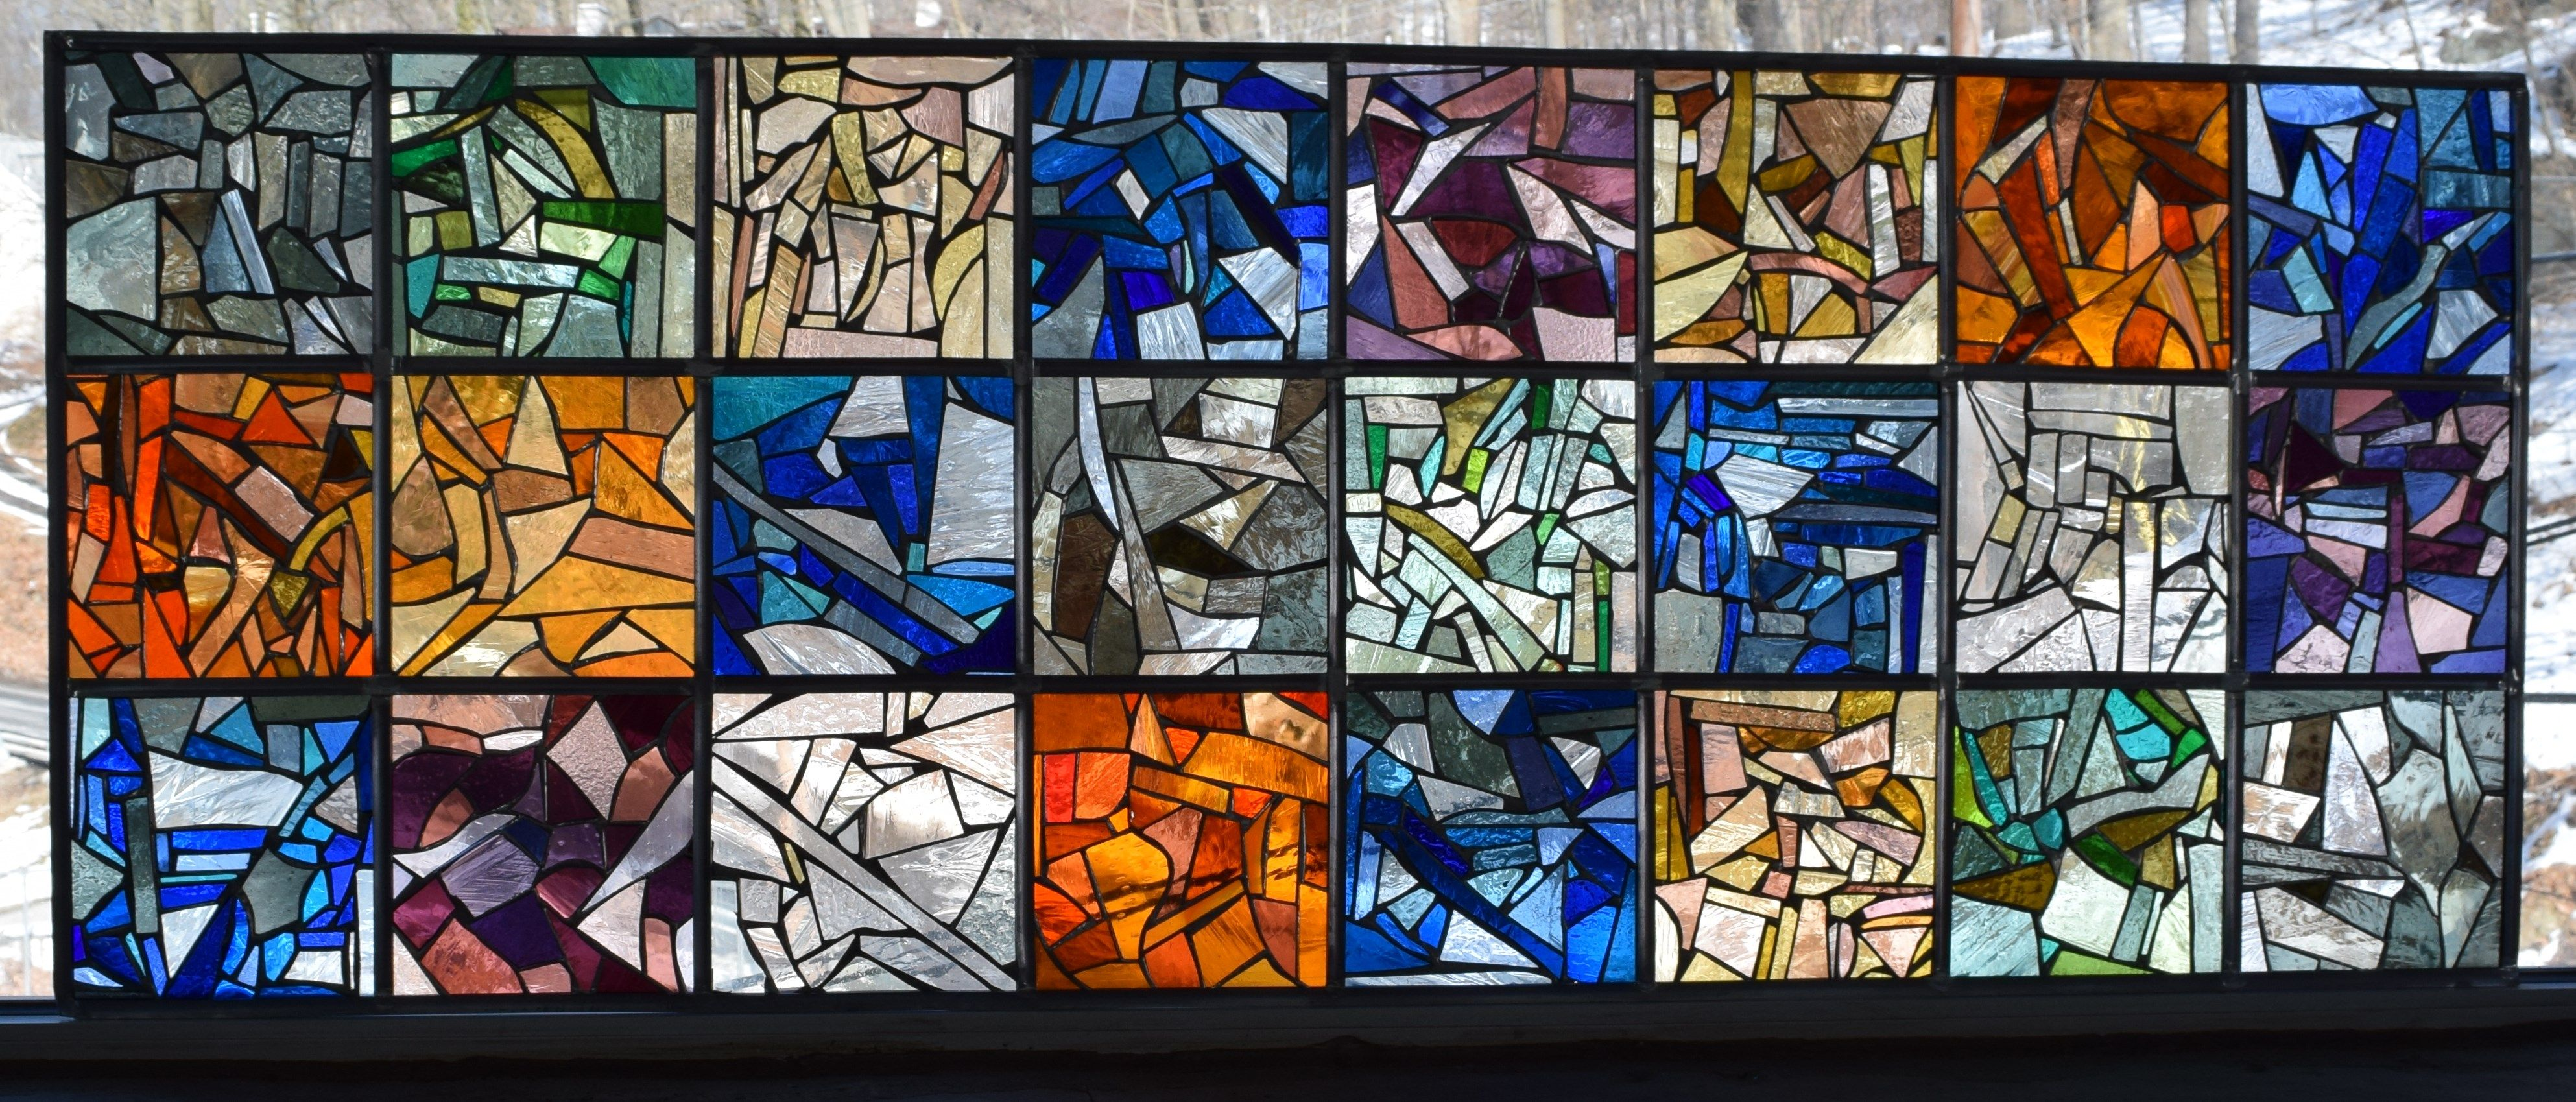 Handmade Stained Glass Collage Colorful Abstract Modern